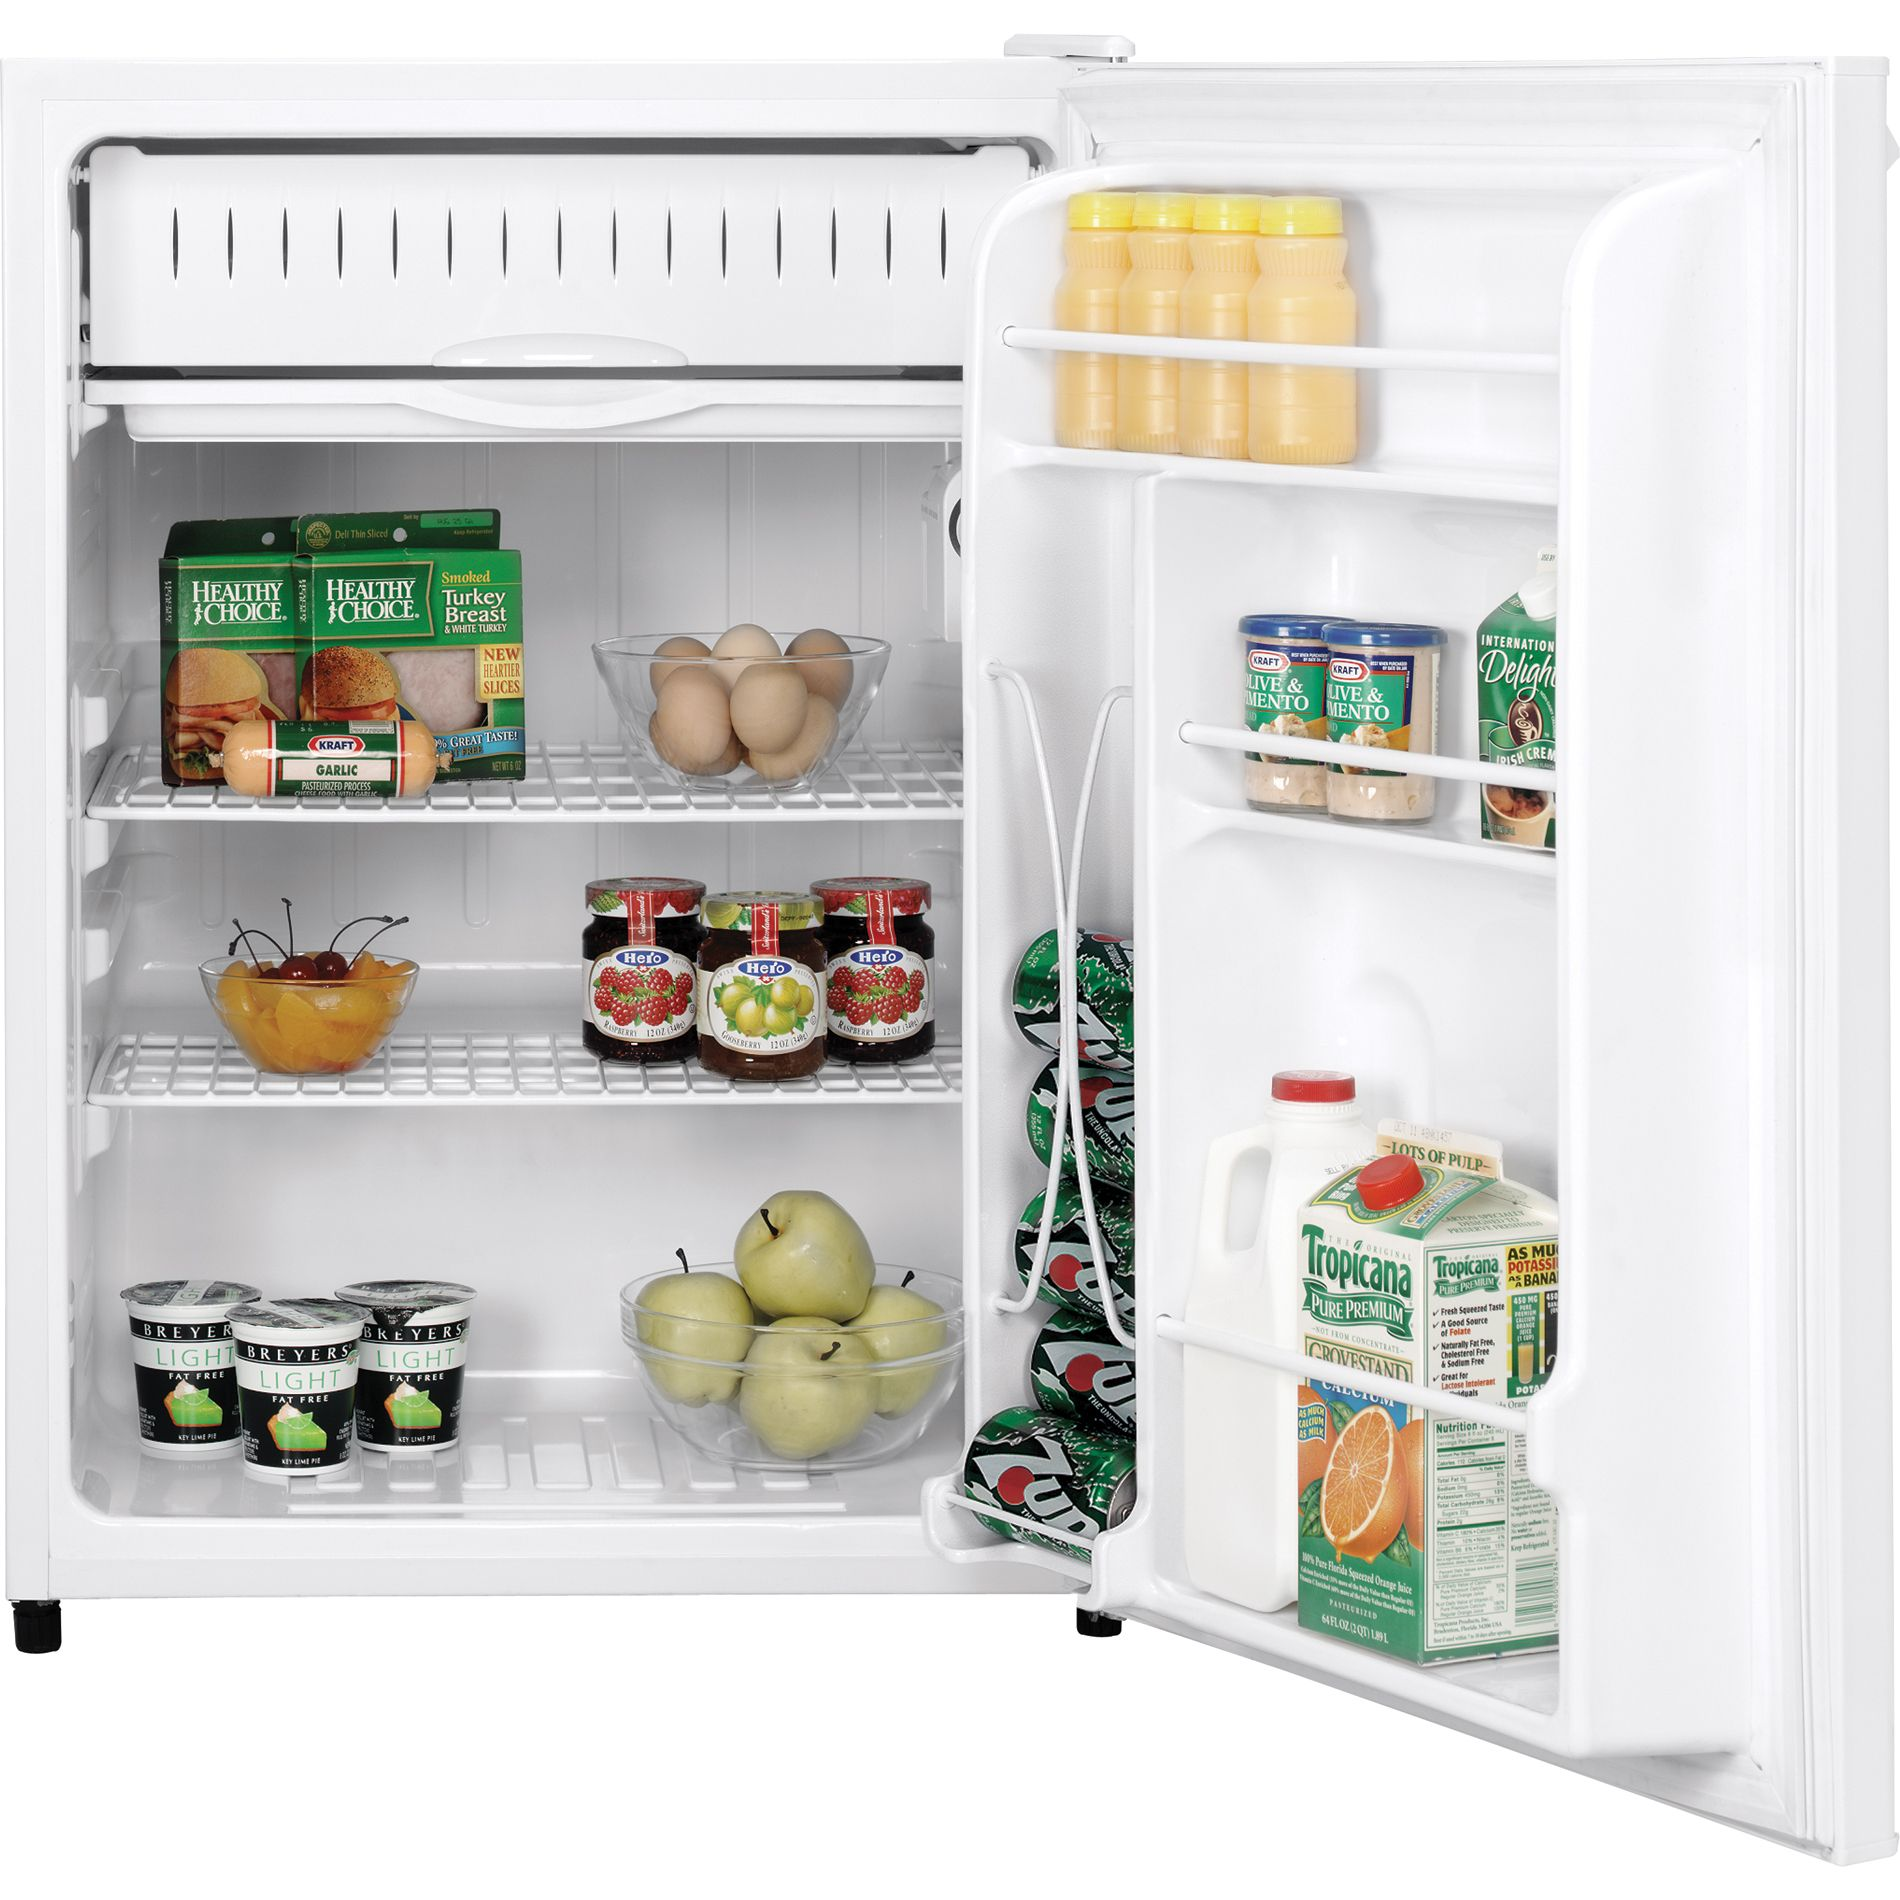 GE 6.0 cu. ft. Compact Refrigerator - White